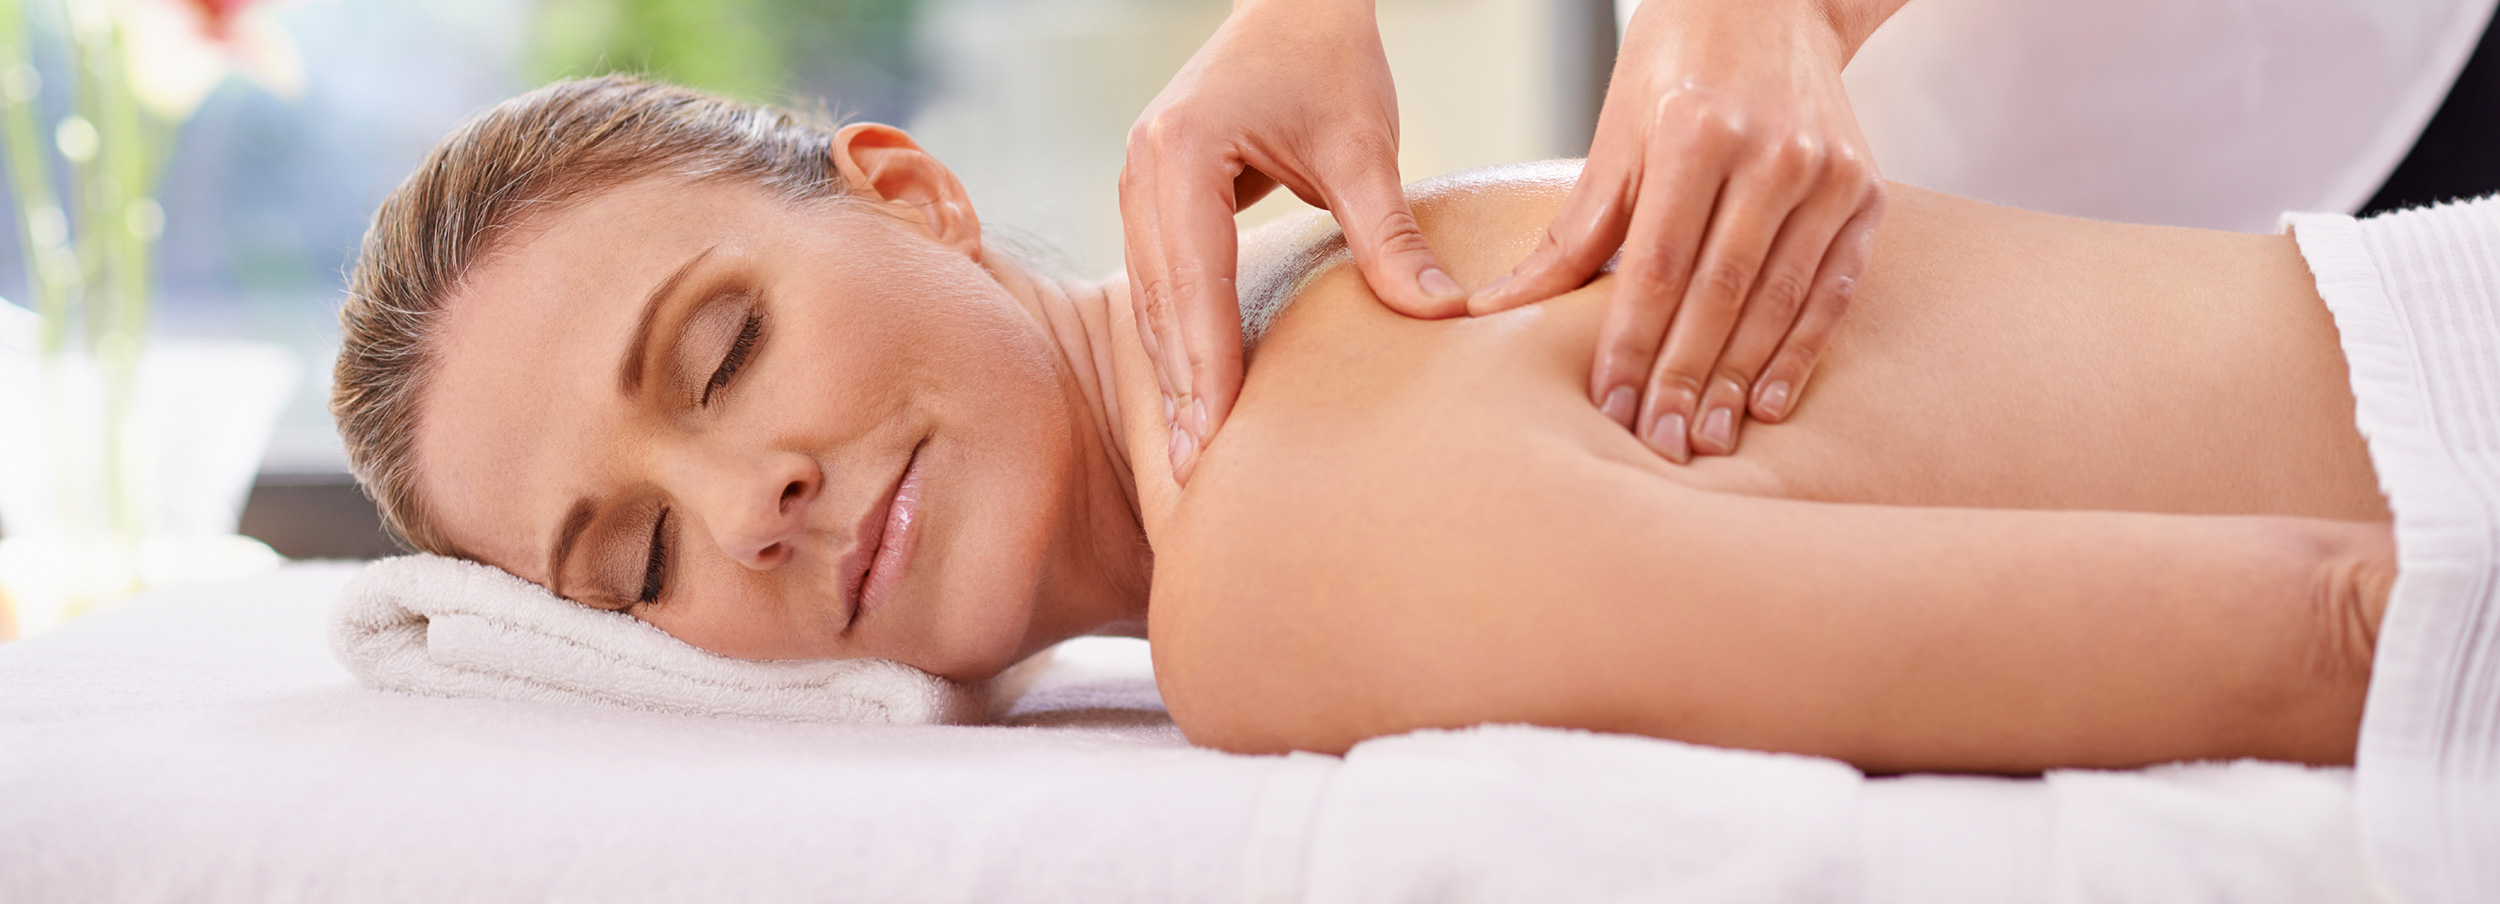 therapeutic massage charming professional hands special mins